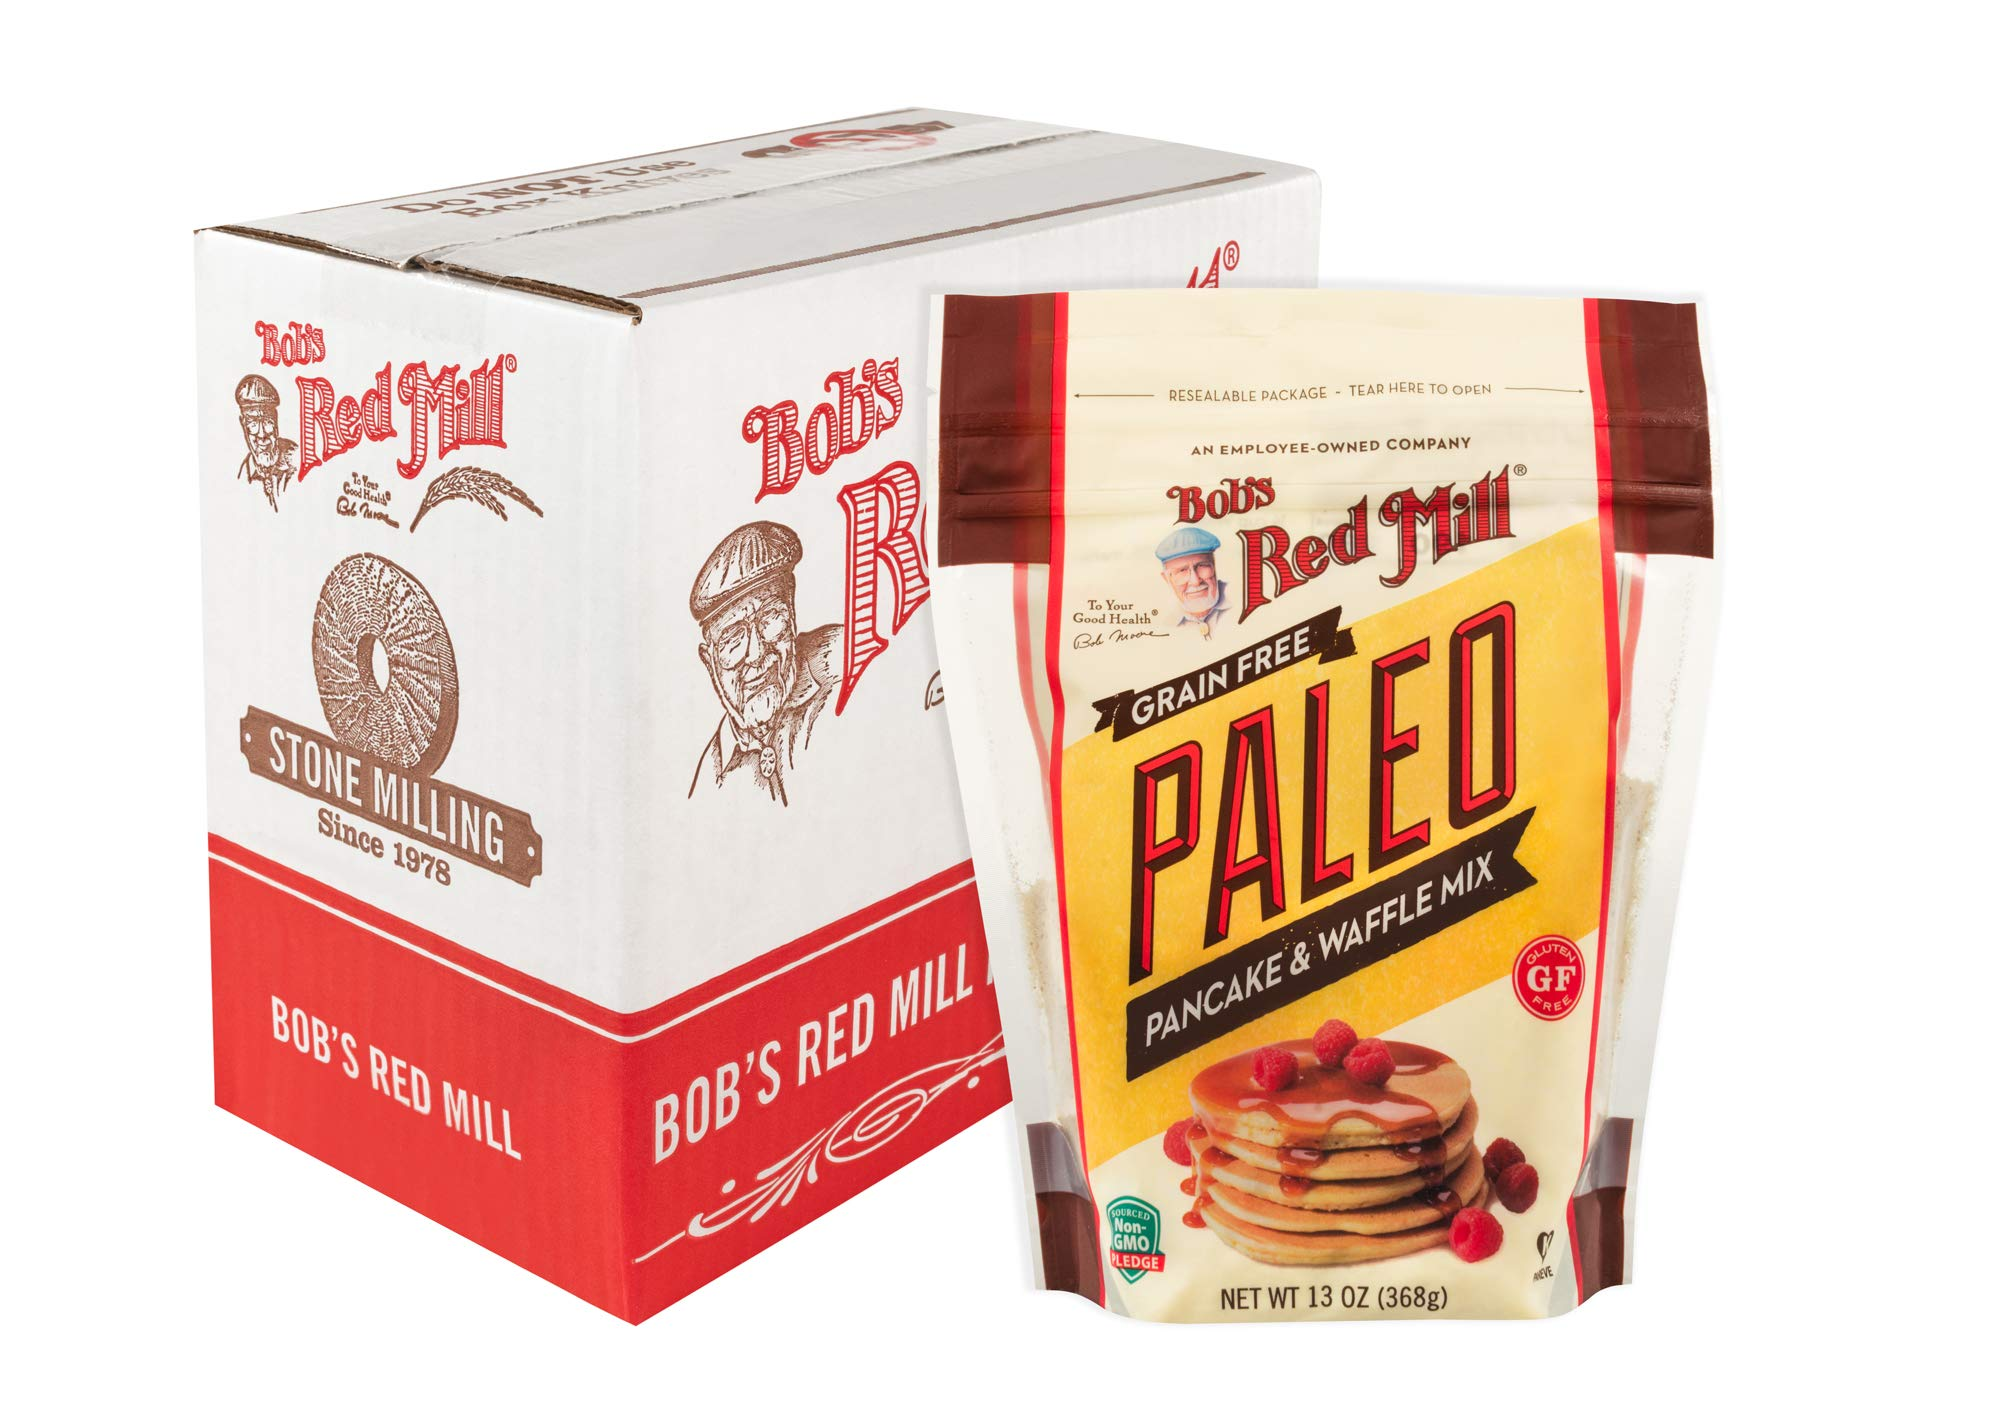 Bob's Red Mill Resealable Gluten Free Paleo Pancake & Waffle Mix, 13 Oz (4 Pack) by Bob's Red Mill